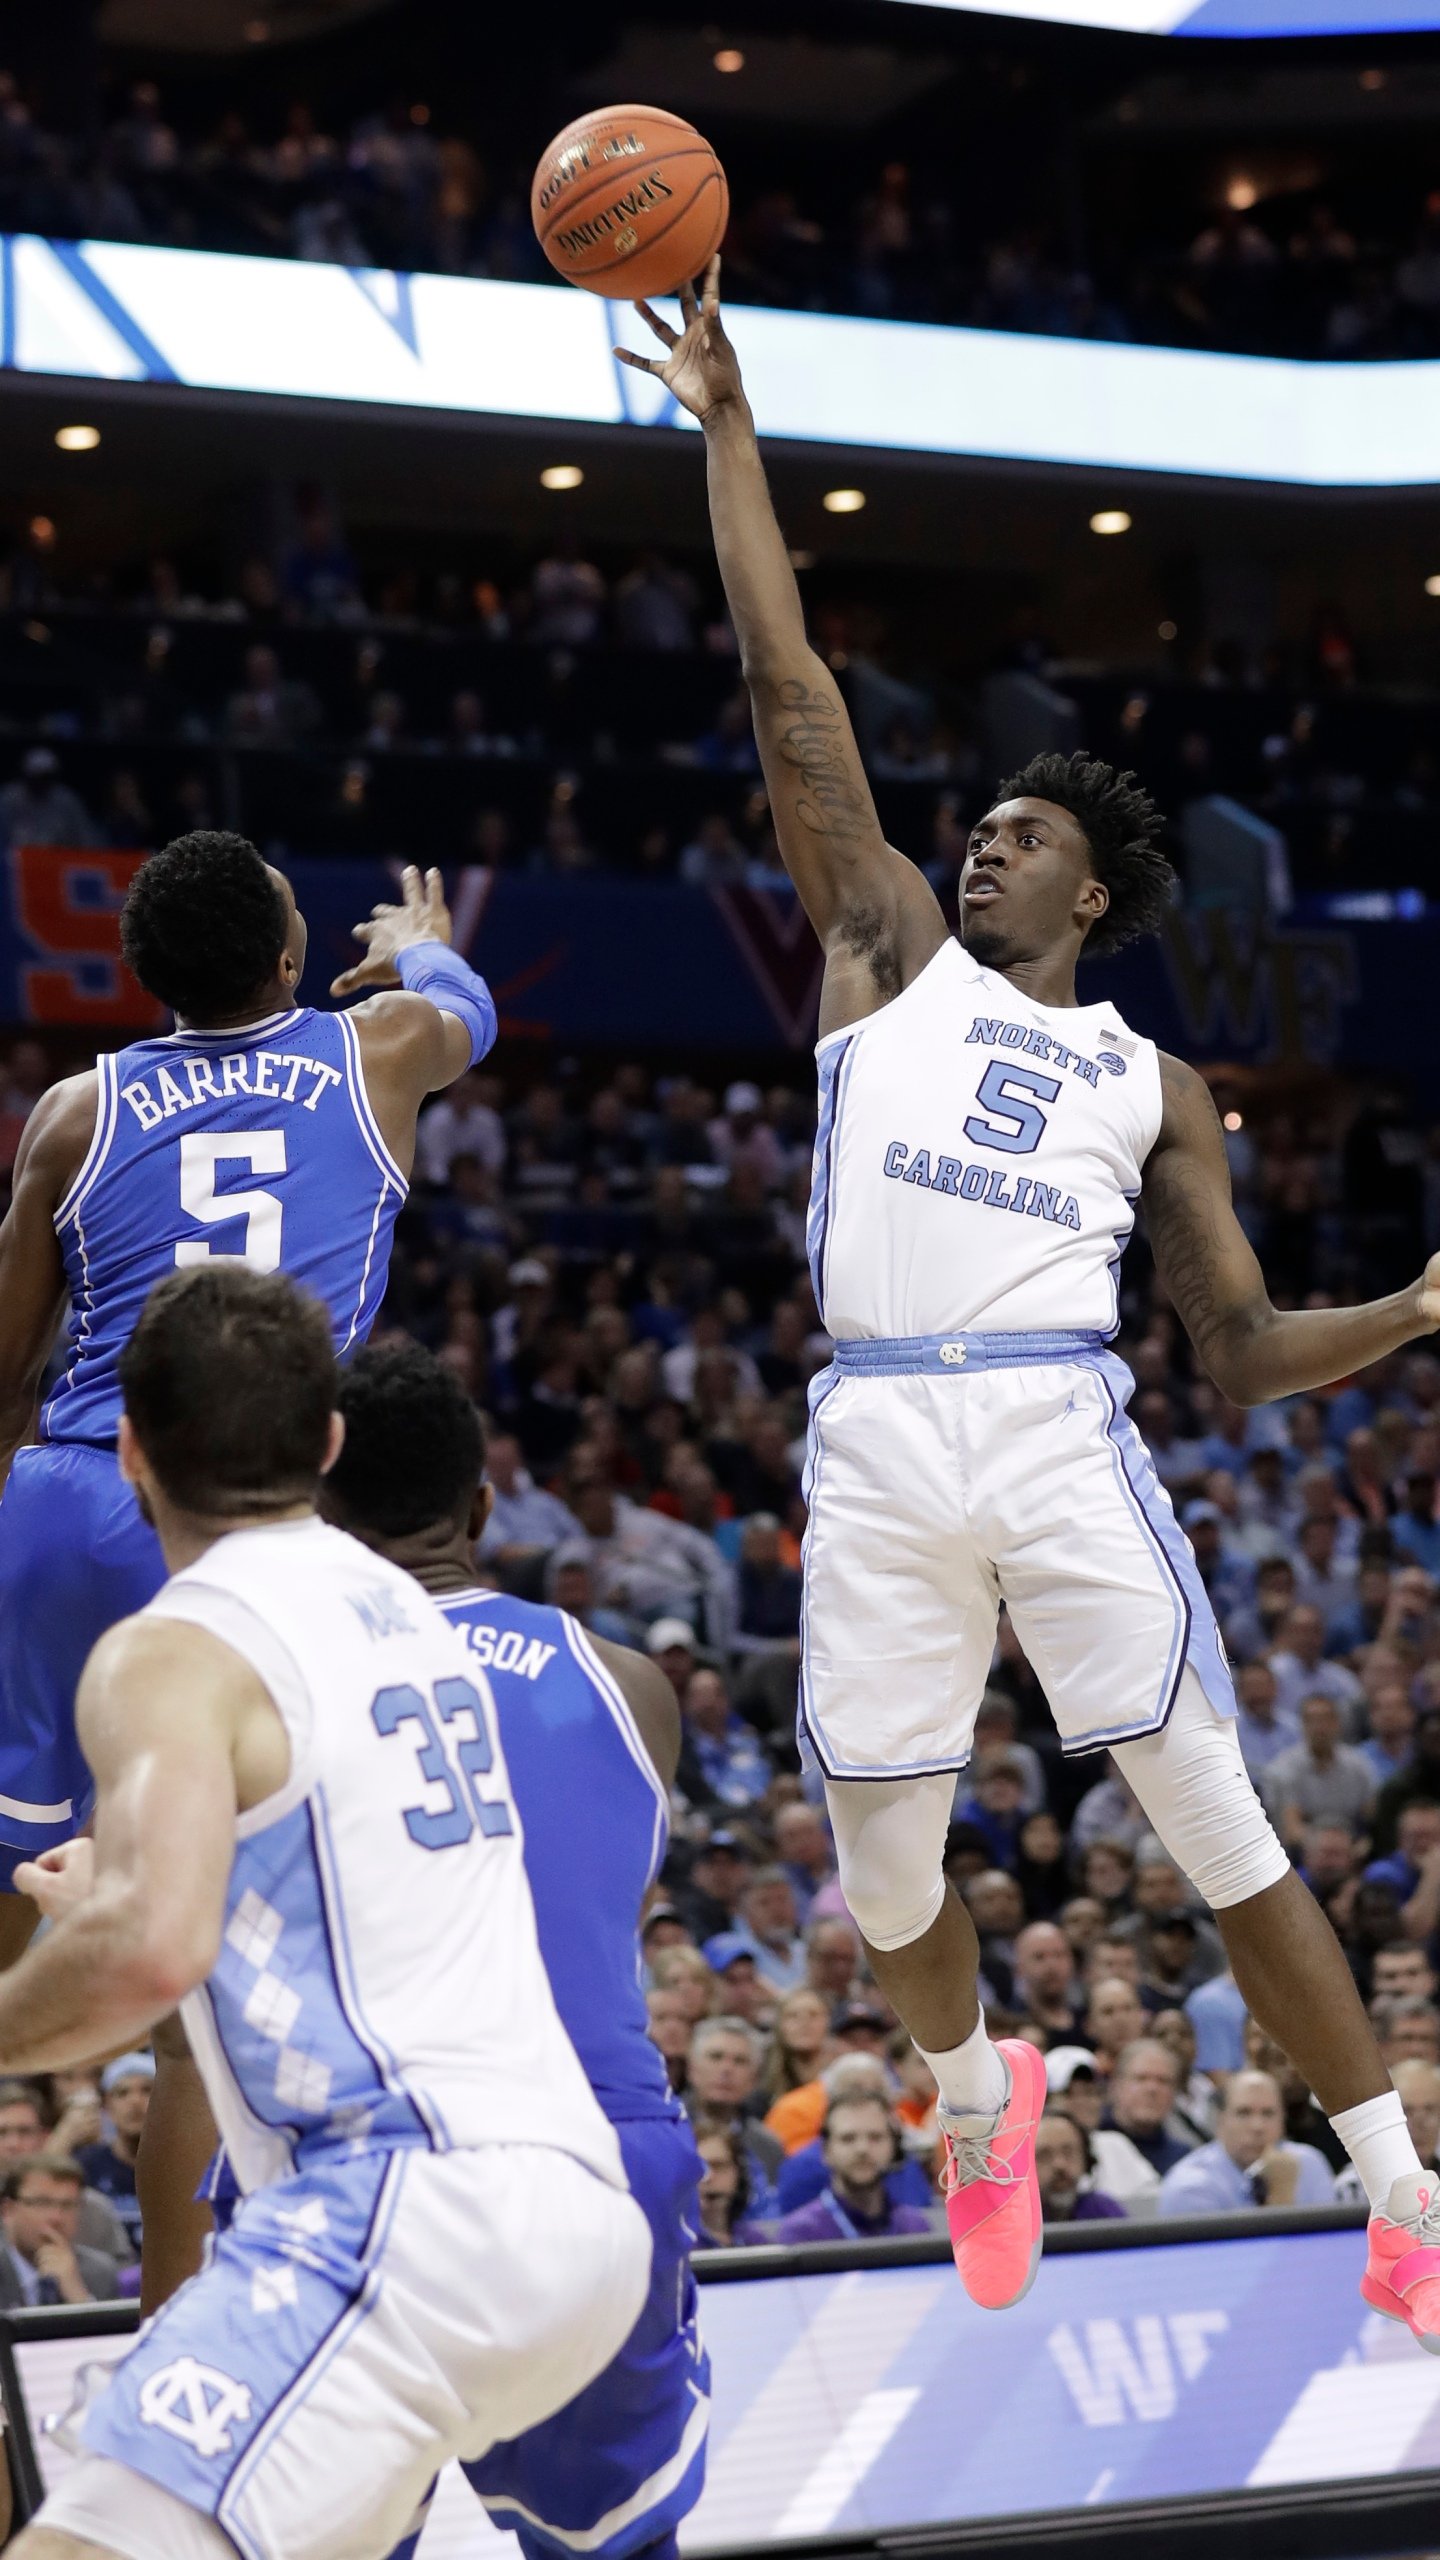 ACC_Duke_North_Carolina_Basketball_22777-159532.jpg62232653